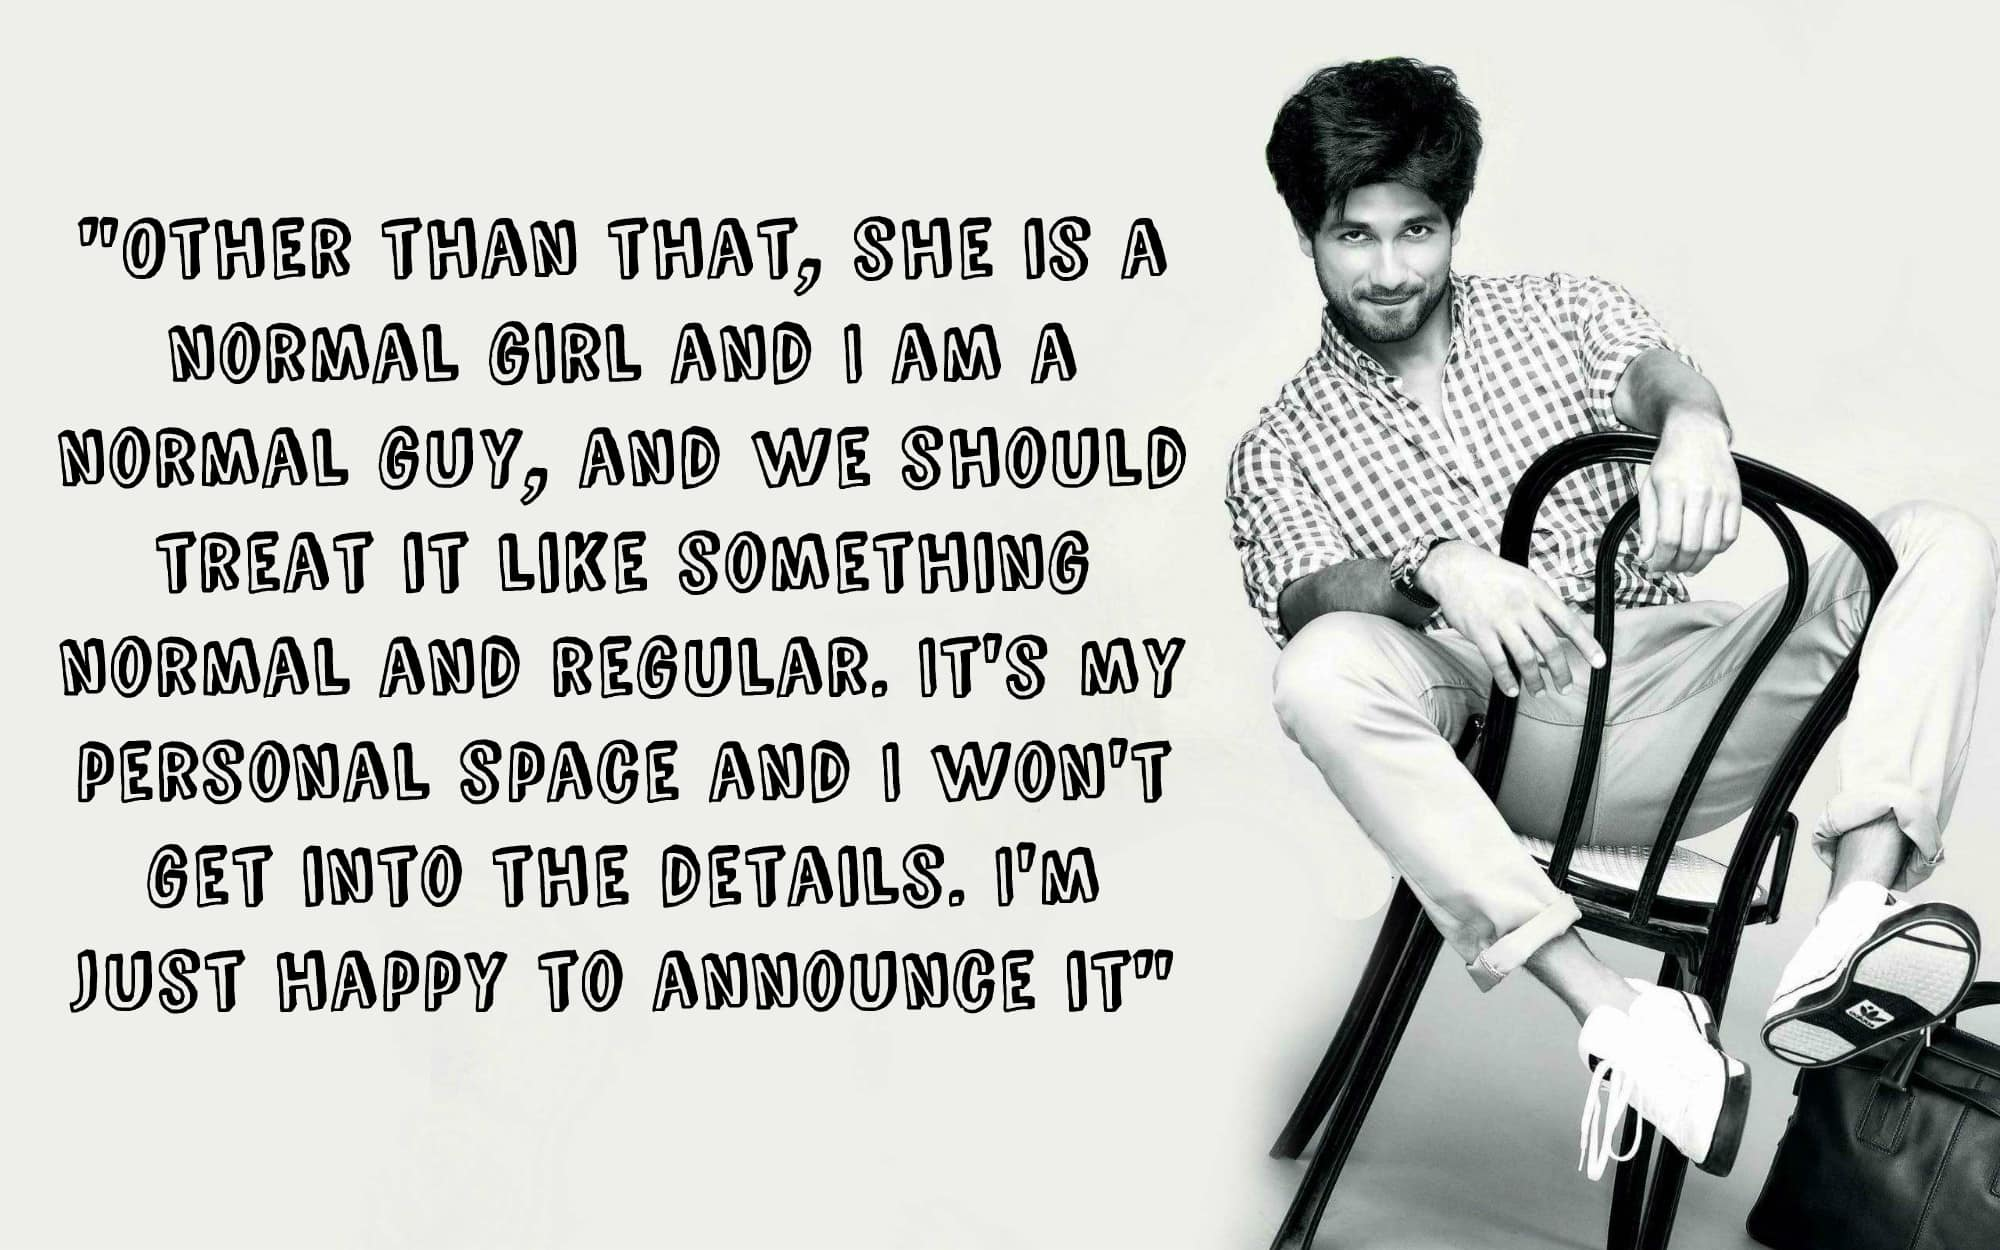 Here's The Full Interview of Shahid Kapoor on Mira Rajput and His Marriage